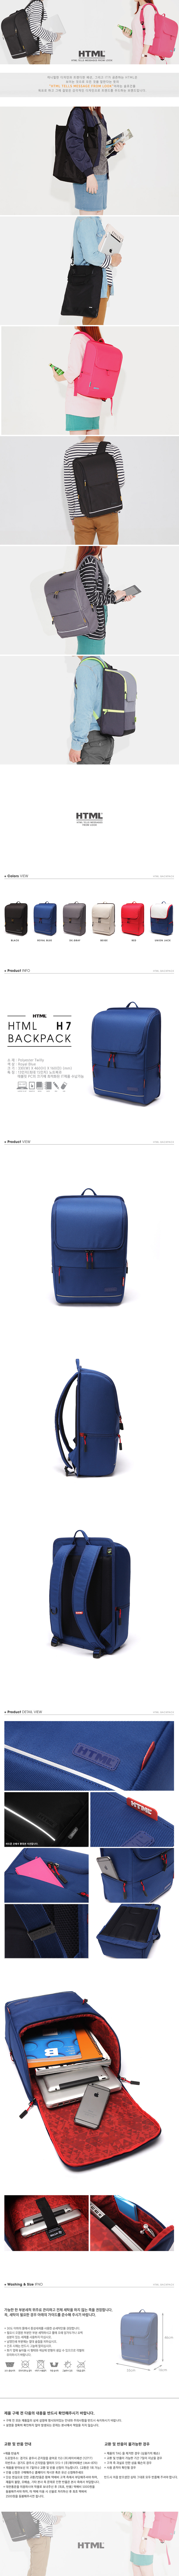 [에이치티엠엘]HTML-NEW H7 (2015) Backpack (NAVY)